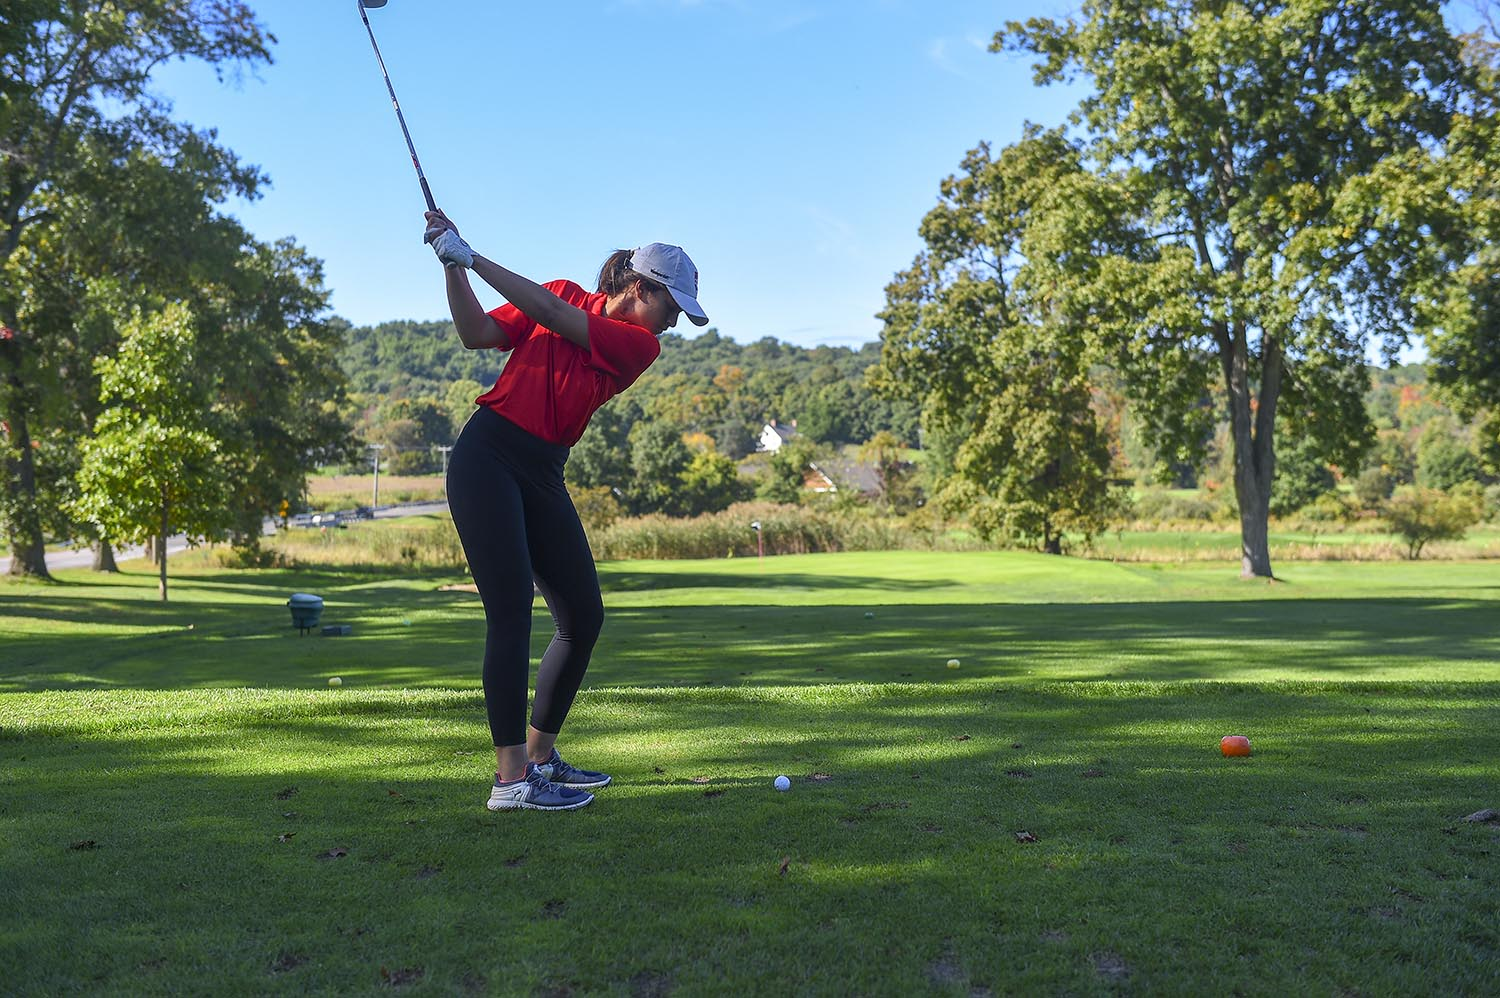 The three individuals that competed in fall competition this season were juniors Saadia Naeem and Emma Mehta, and first-year Meg Wiley. Naeem is the most experienced of the trio, having been a member of the Wesleyan golf team since 2016–17. She will serve as the team's captain in its inaugural 2019–20 season.